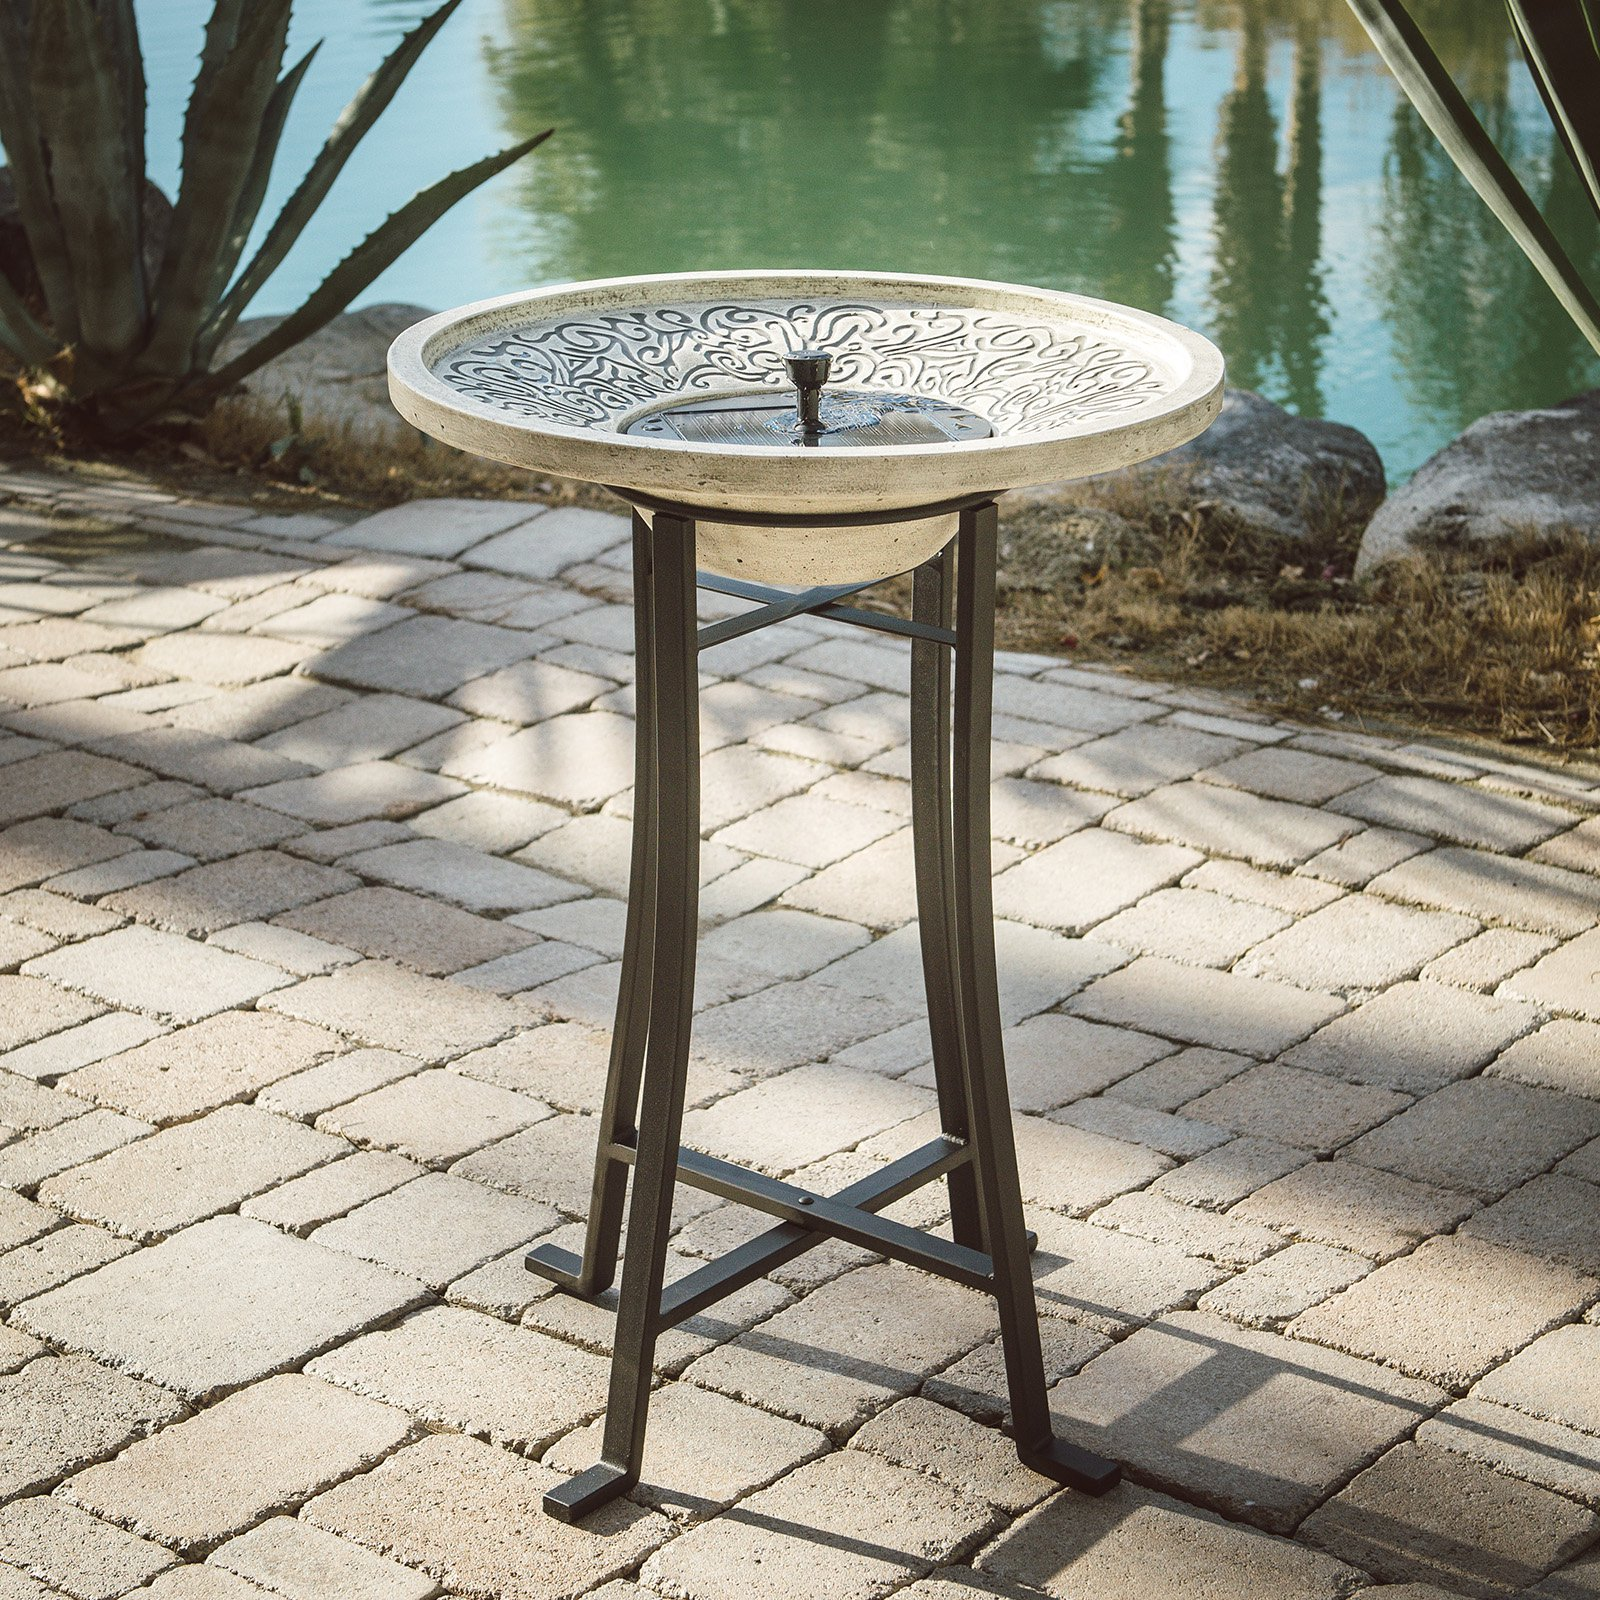 Belham Living Perello Concrete Solar Birdbath by Smart Solar by